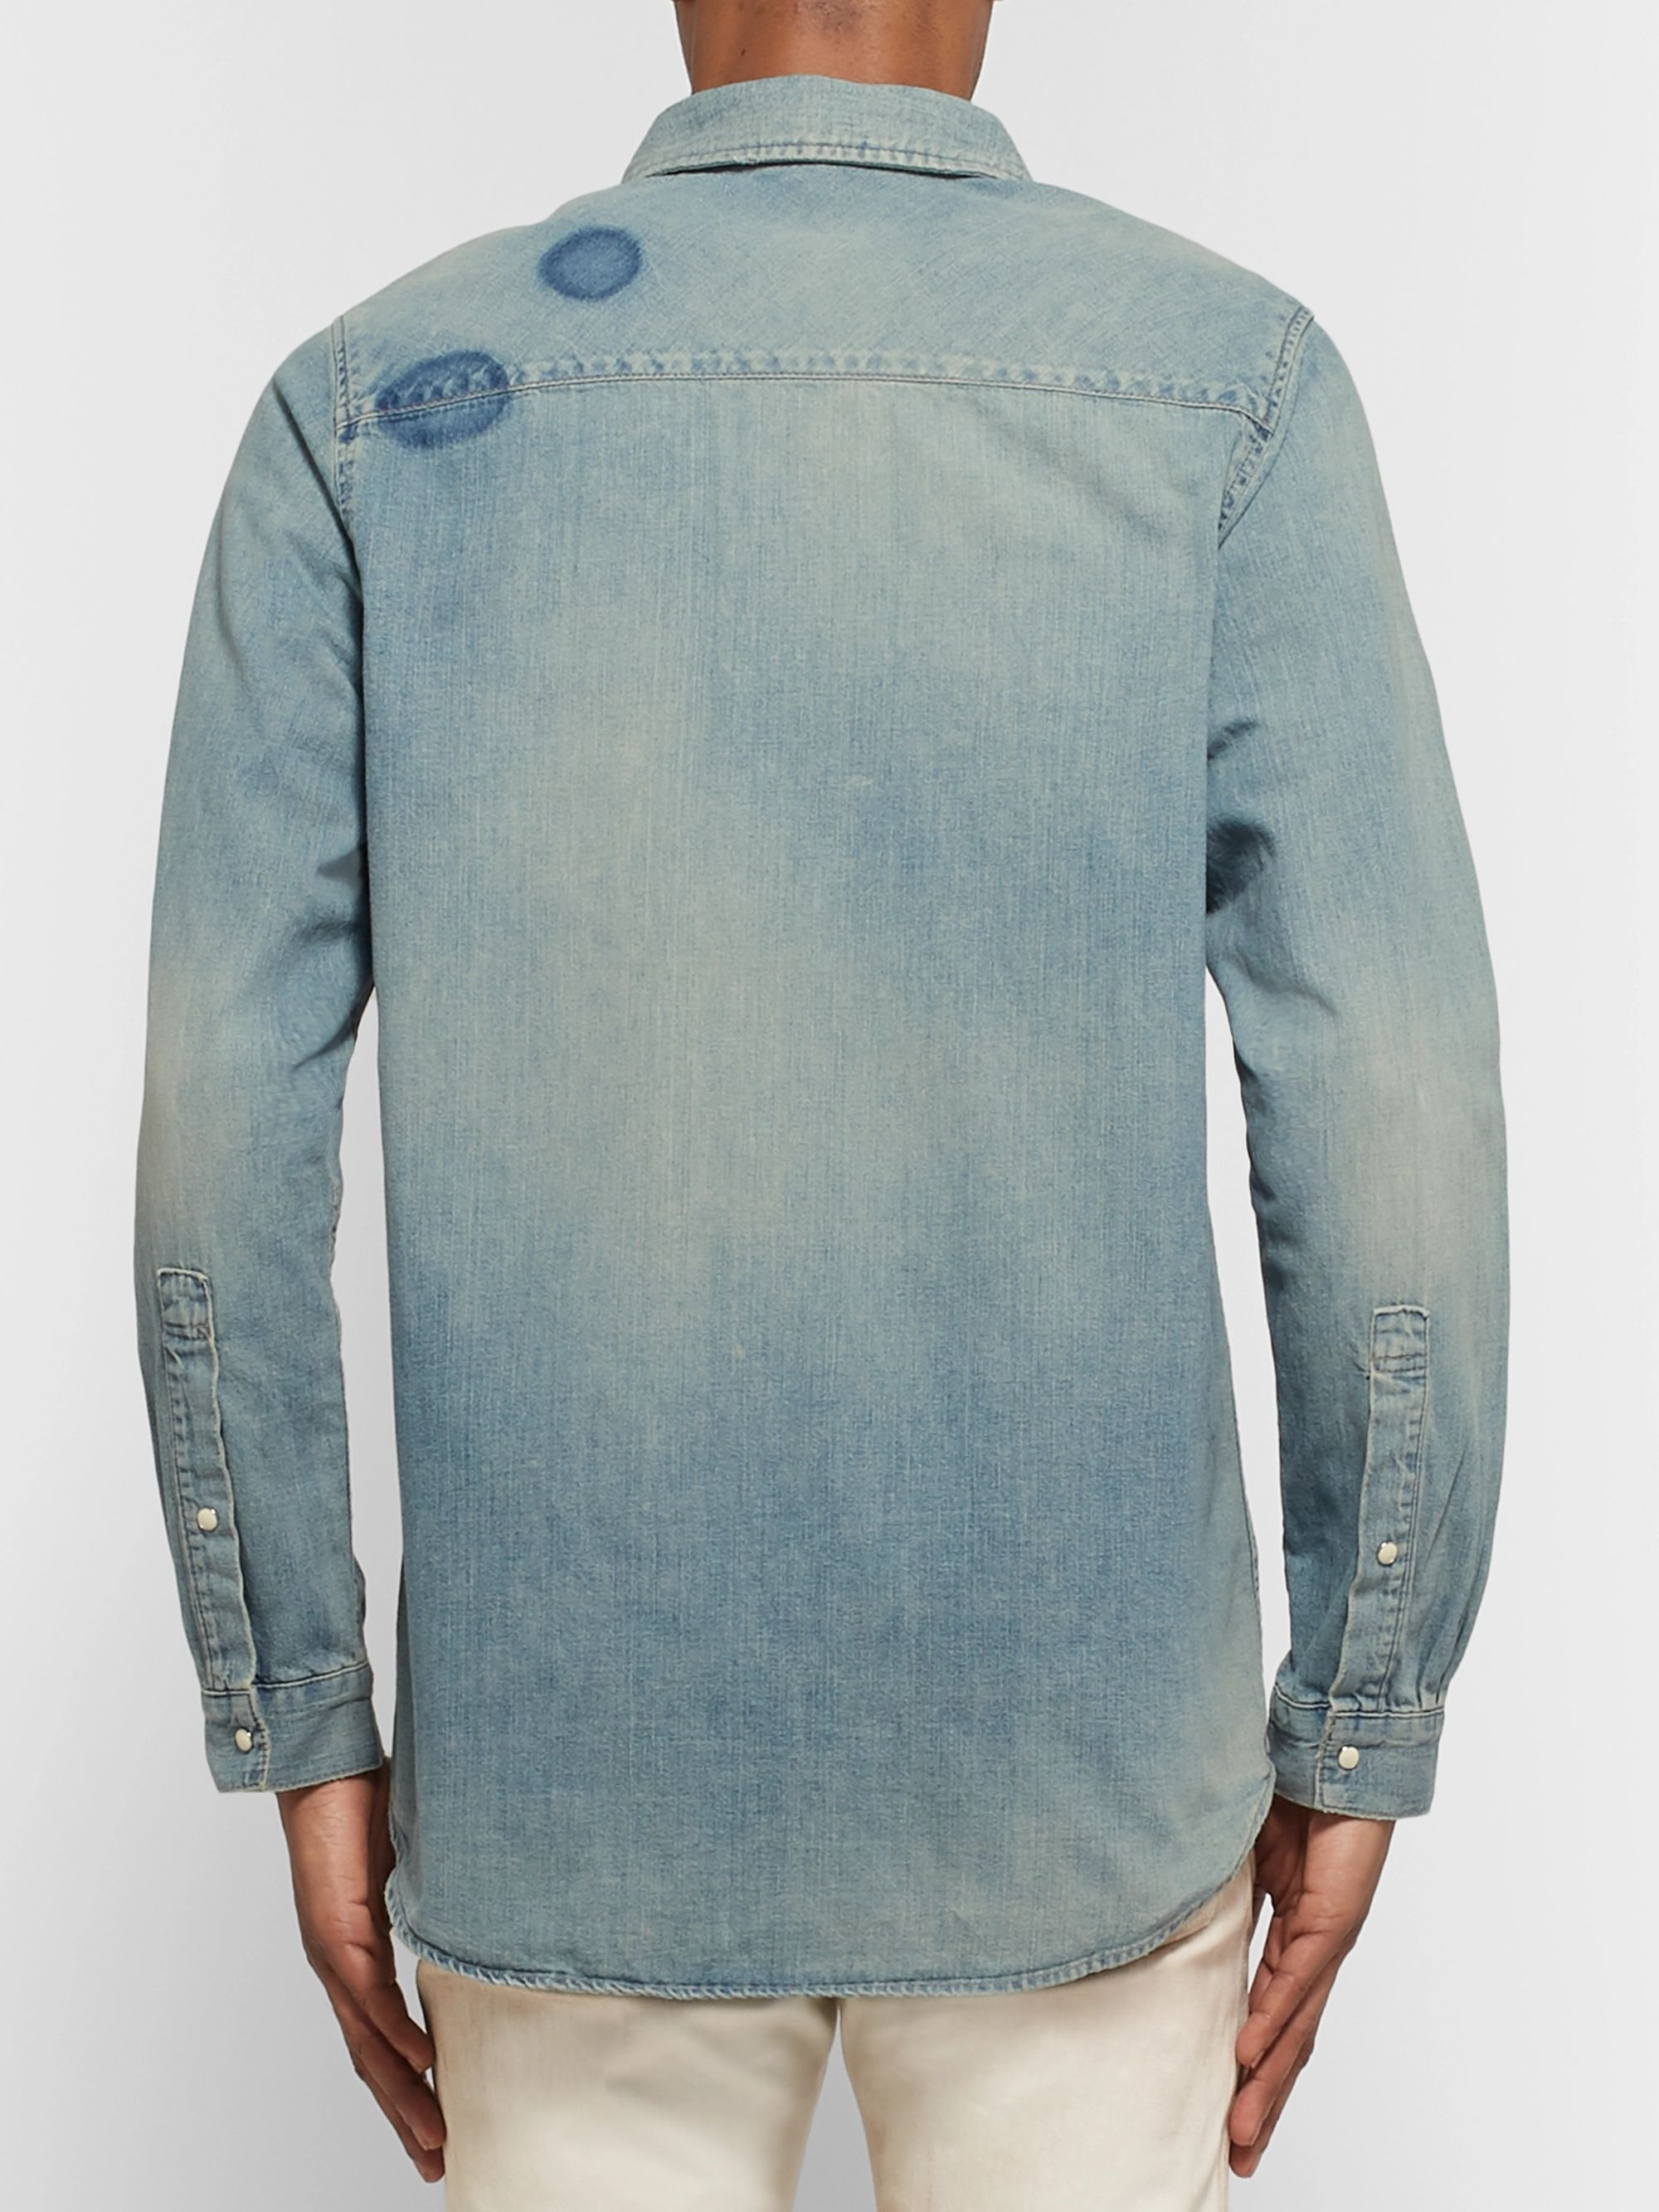 John Elliott Distressed Denim Western Shirt